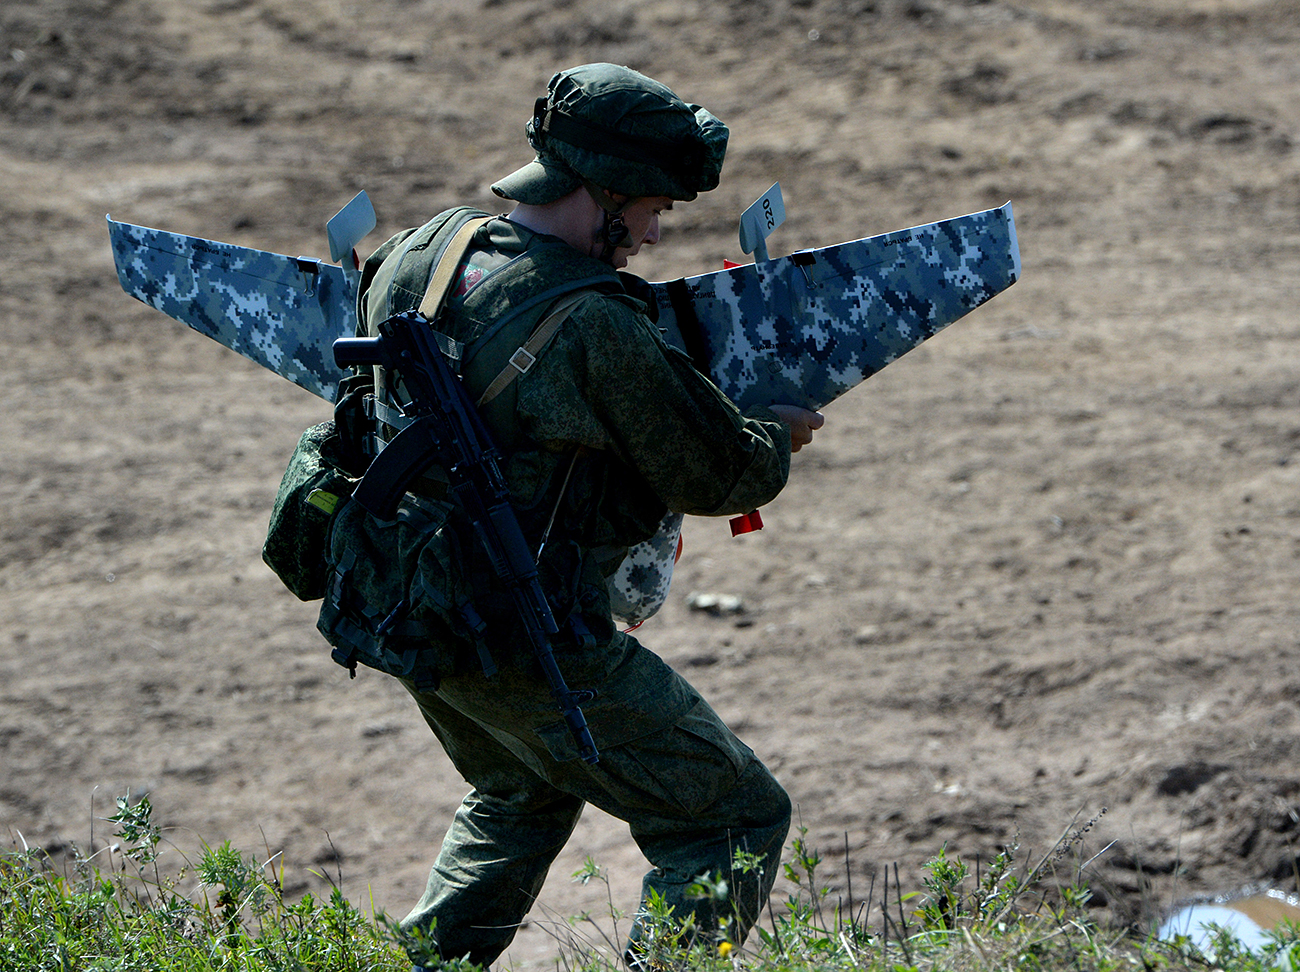 A Russian serviceman prepares to launch a drone during the Indra 2016 joint Russian-Indian military exercise at Sergeyevsky base. Source: Vitaliy Ankov/RIA Novosti